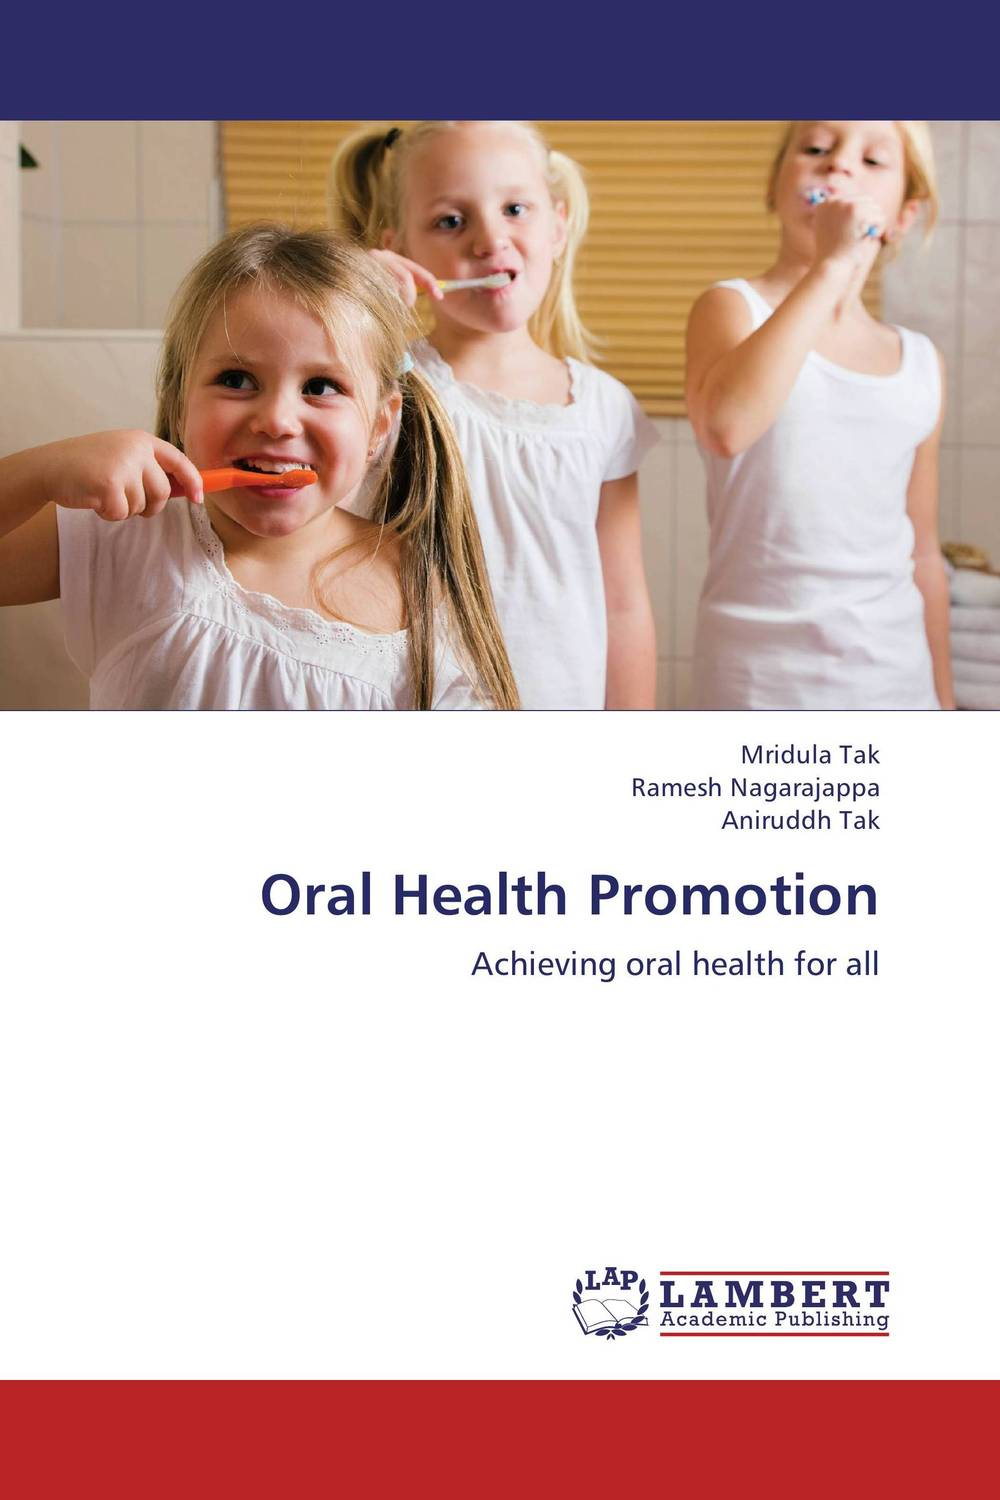 Oral Health Promotion omega 3 fish oil supplement 1000mg 180 count triglyceride form premium pharmaceutical grade known as being one of the best health supplements for cardiovascular joint and brain health benefits easy to swallow softgel capsules natural lemon